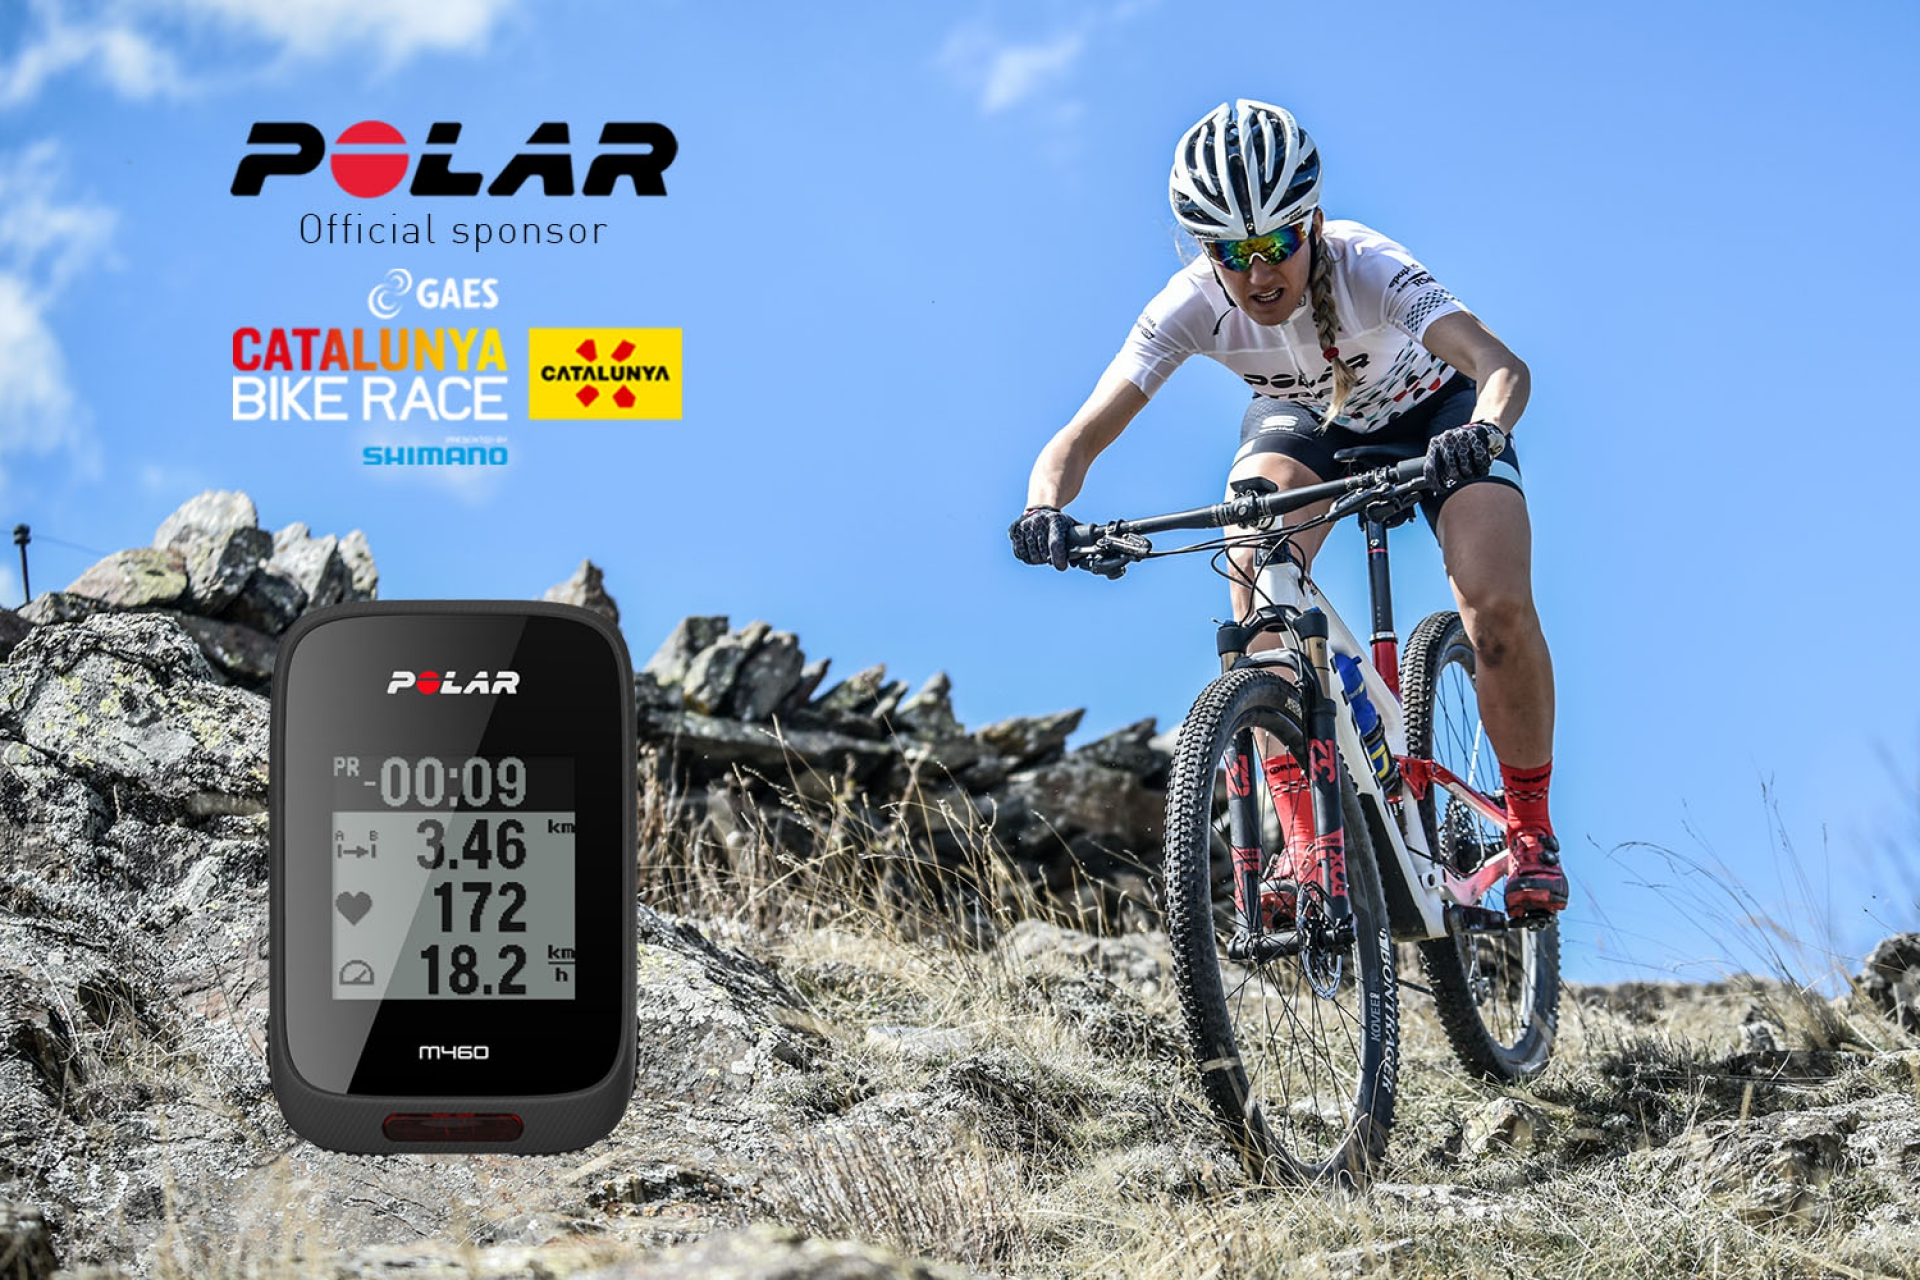 Polar porta moltes sorpreses a GAES Catalunya Bike Race presented by Shimano